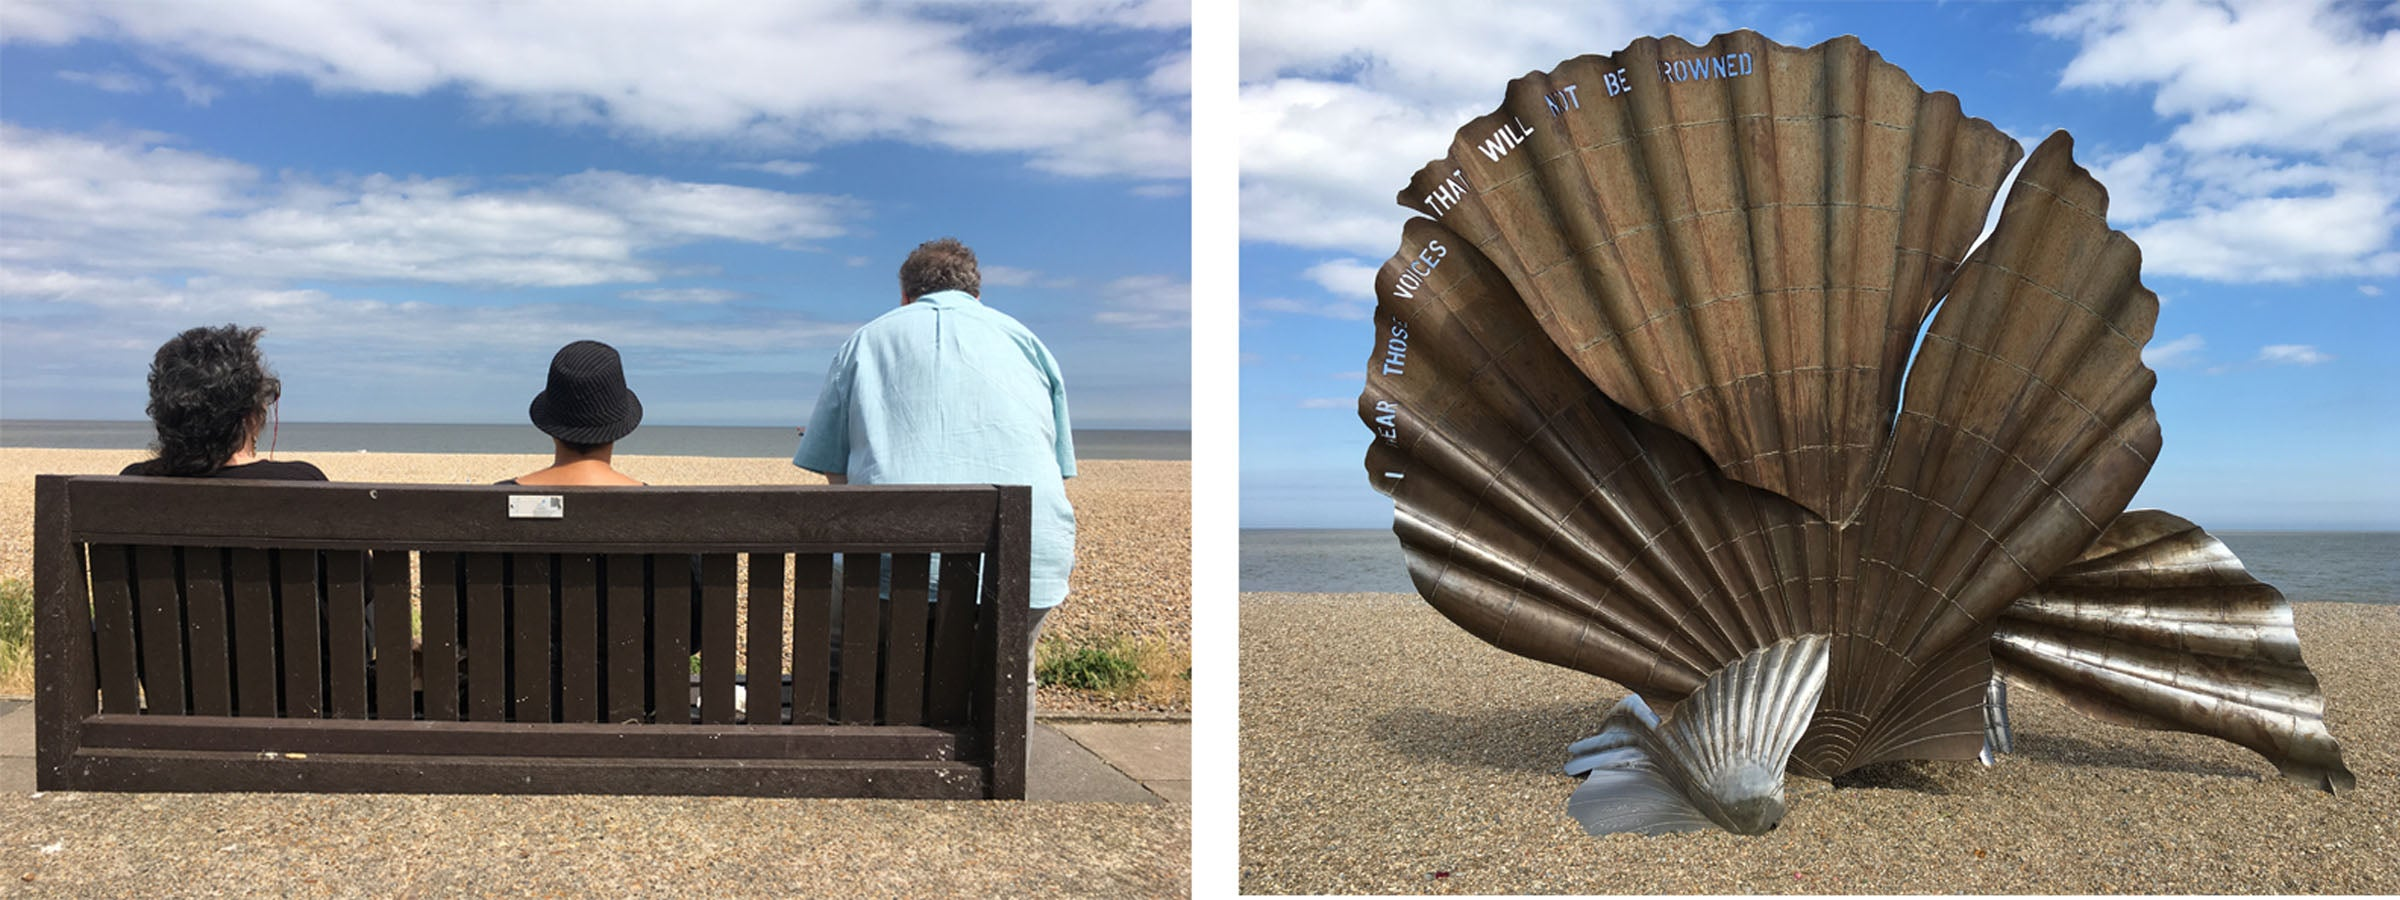 The shell shaped Scallop structure; the poets on a bench observing the view